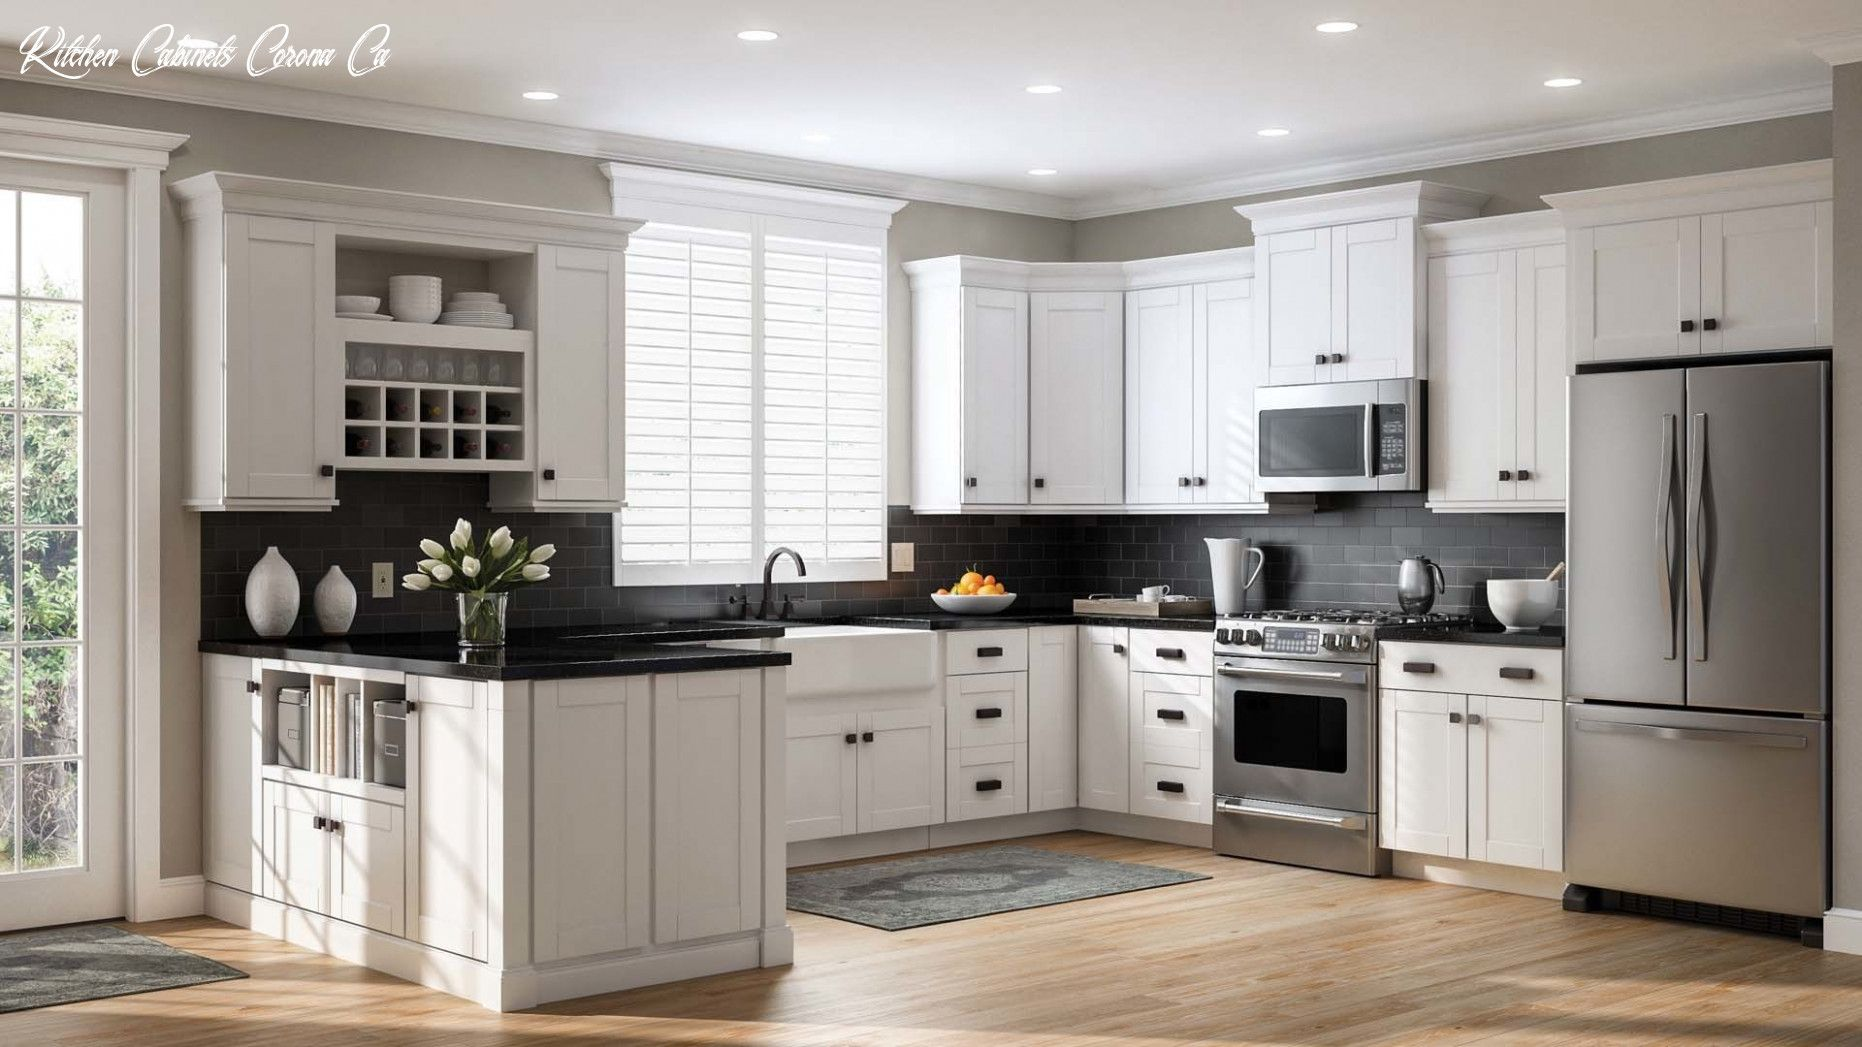 Kitchen Cabinets Corona Ca In 2020 Kitchen Fittings Shaker Kitchen Cabinets Old Kitchen Cabinets